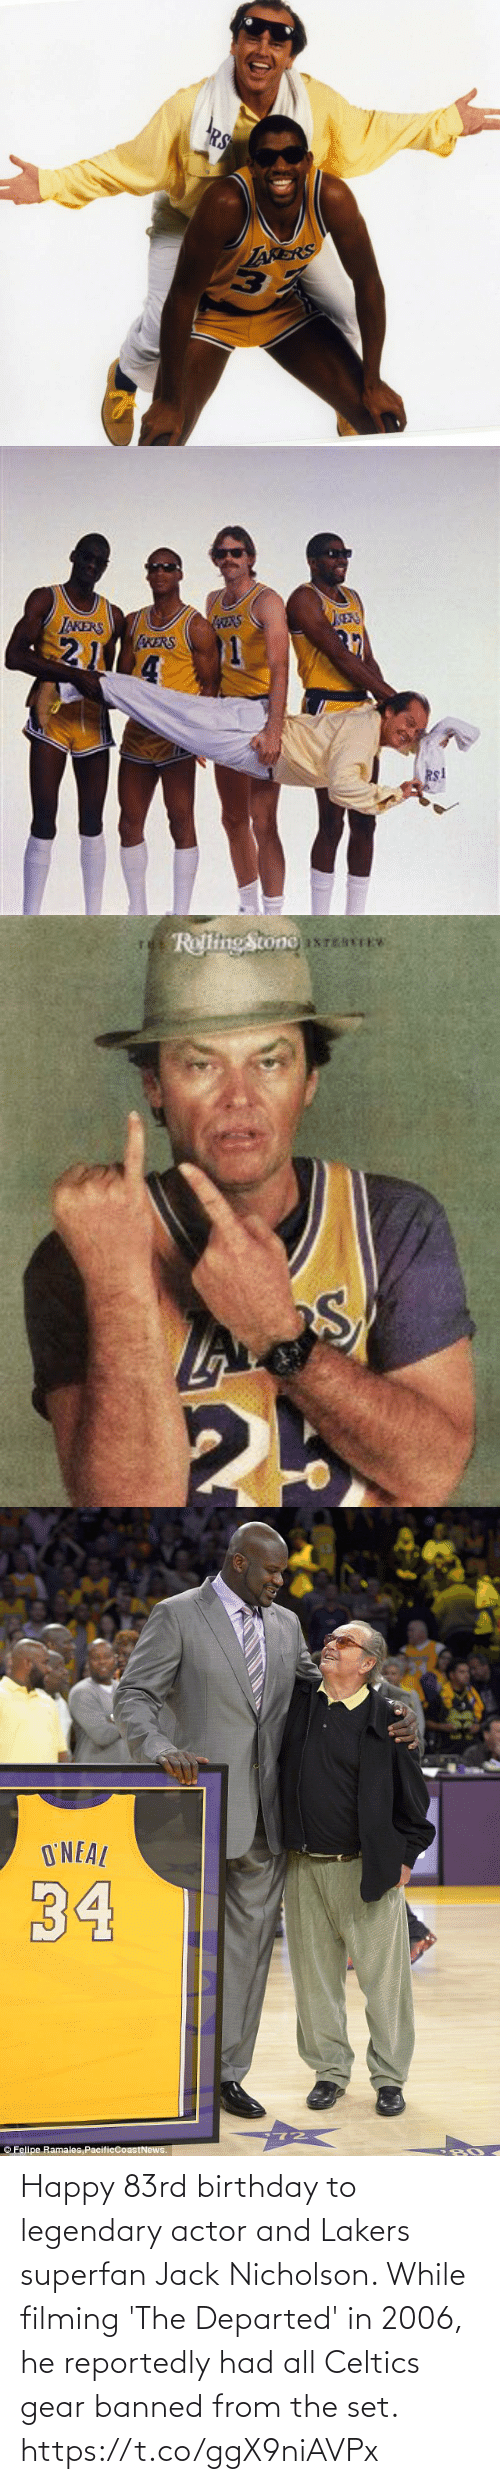 Banned: Happy 83rd birthday to legendary actor and Lakers superfan Jack Nicholson.   While filming 'The Departed' in 2006, he reportedly had all Celtics gear banned from the set. https://t.co/ggX9niAVPx